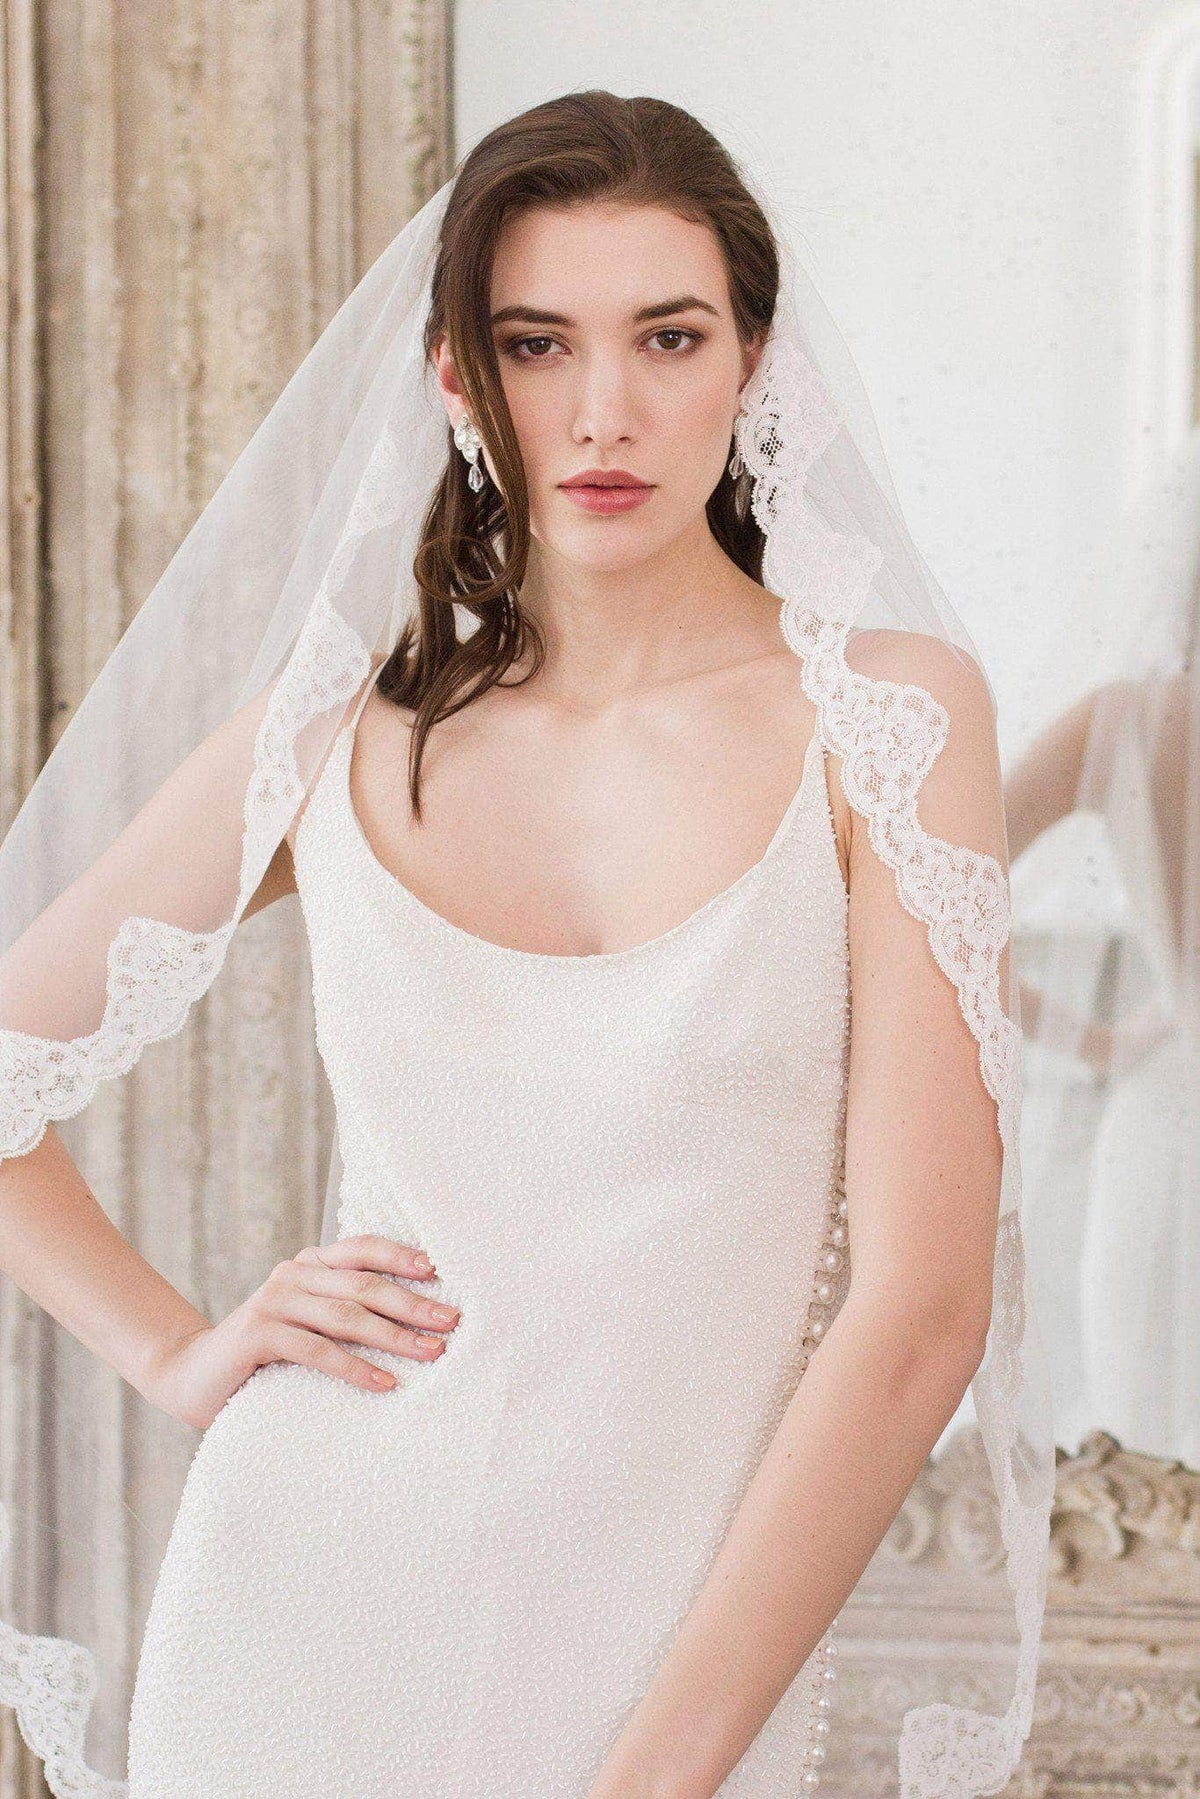 Wedding Veil Fingertip length full lace edged wedding veil - 'Coria'